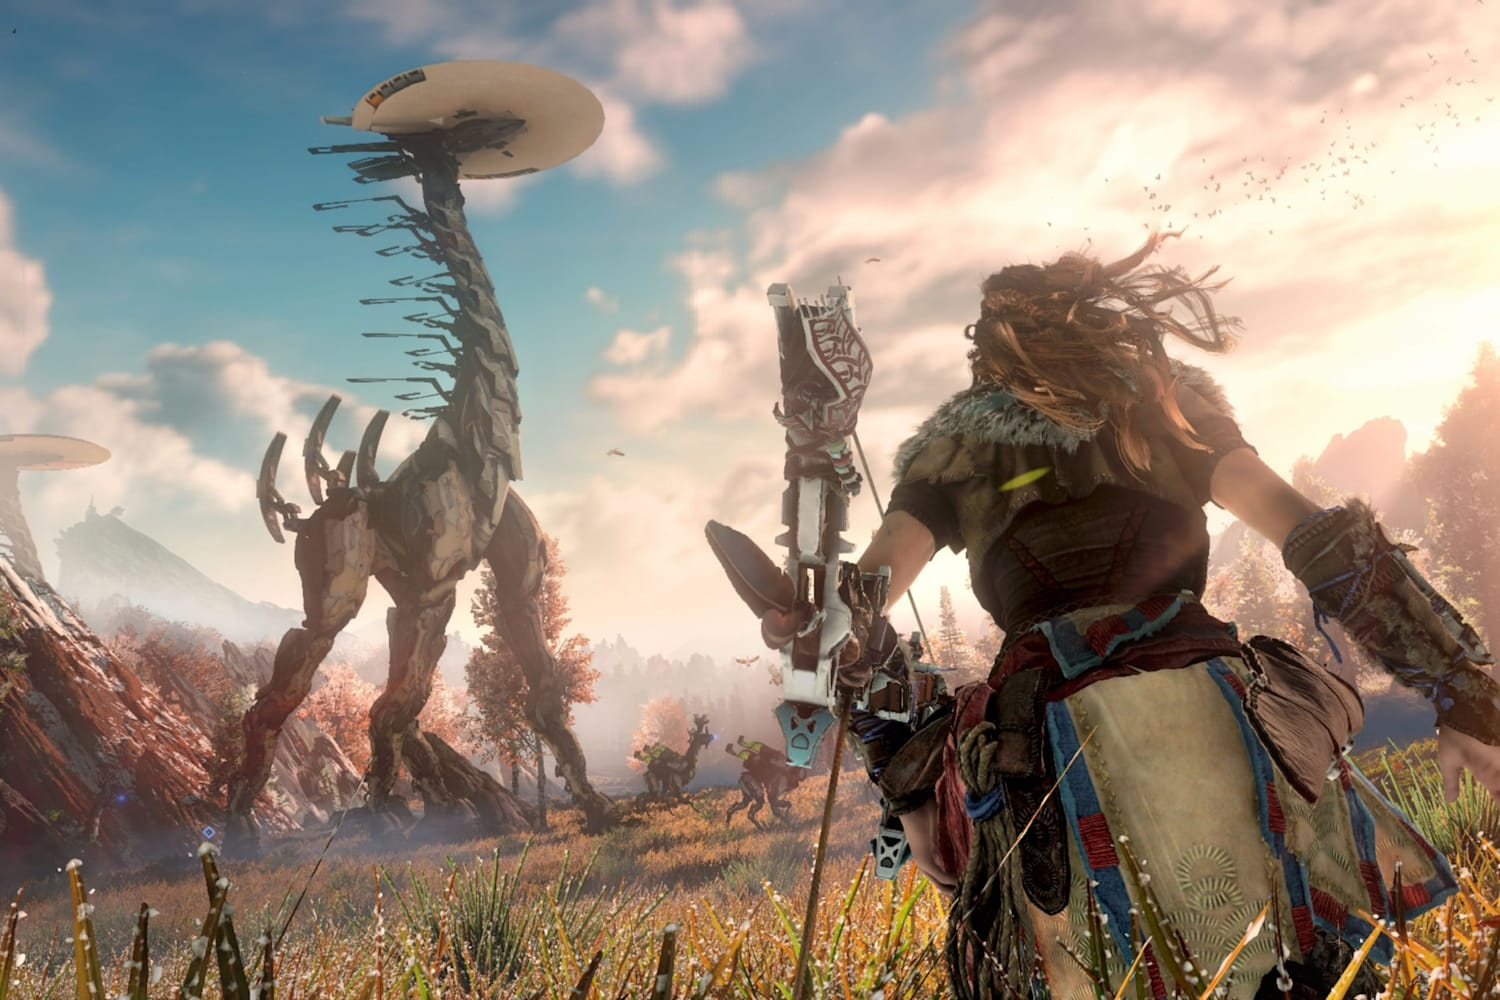 8 essential tips to know before starting Horizon Zero Dawn on PC